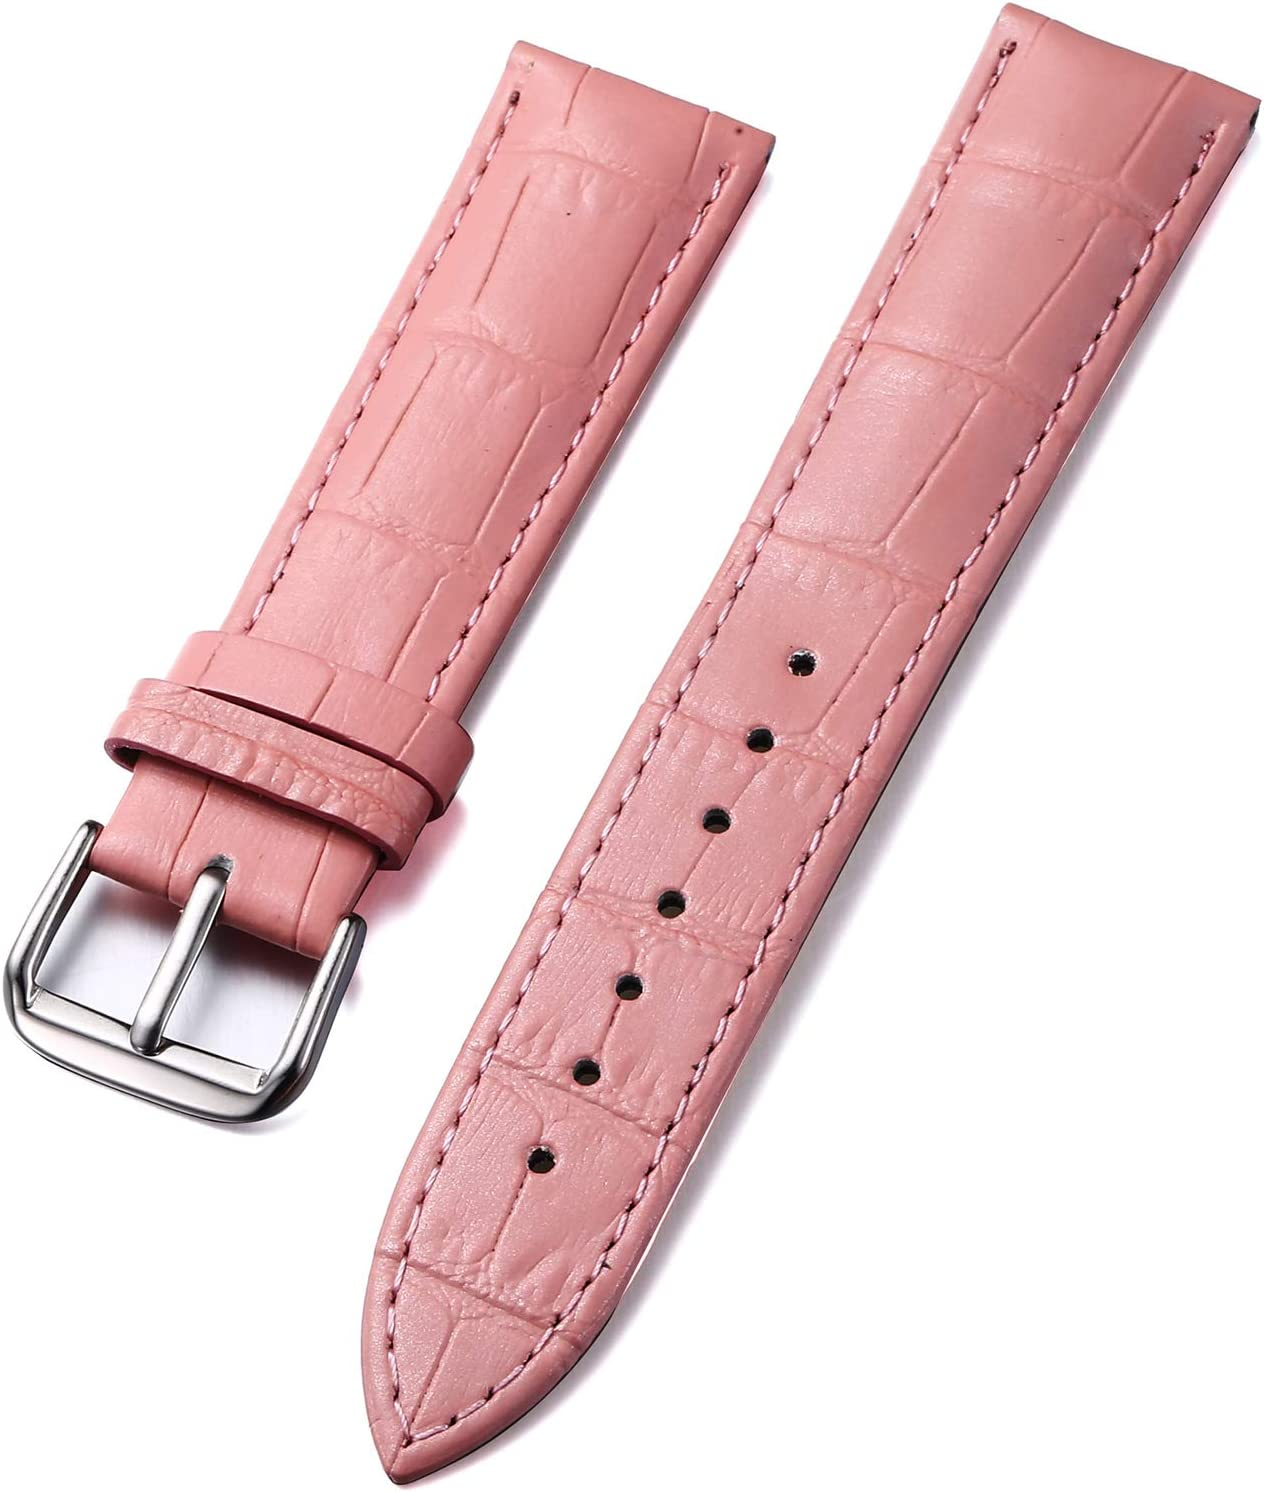 Leather Portland Mall Strap Diesel Watch Band W - Replacement Handmade Fixed price for sale